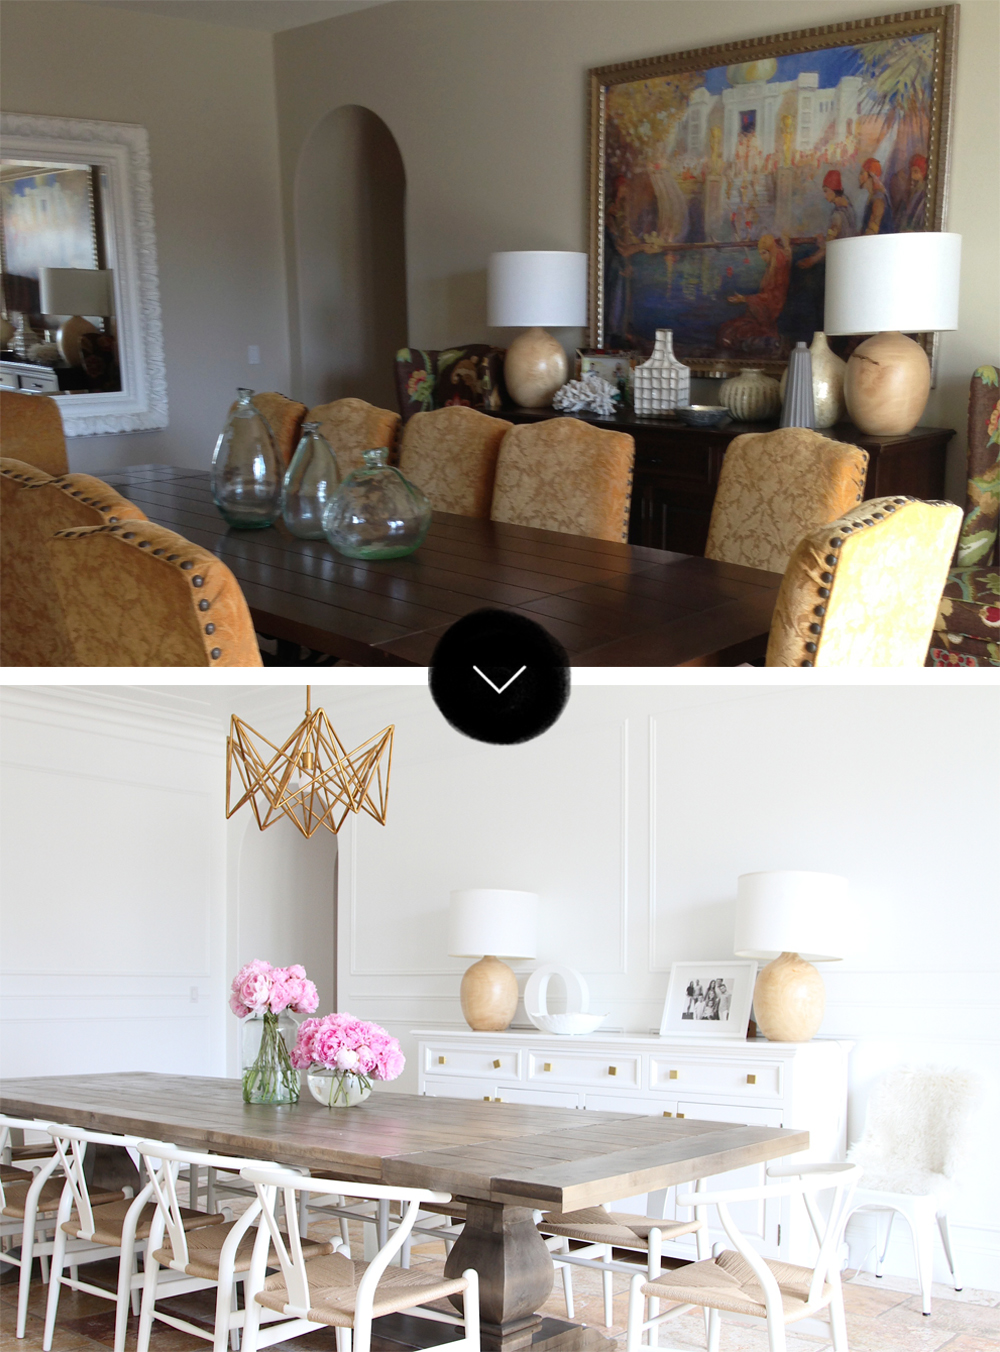 Before & After: A San Clemente Tuscan Tract House, on Design*Sponge